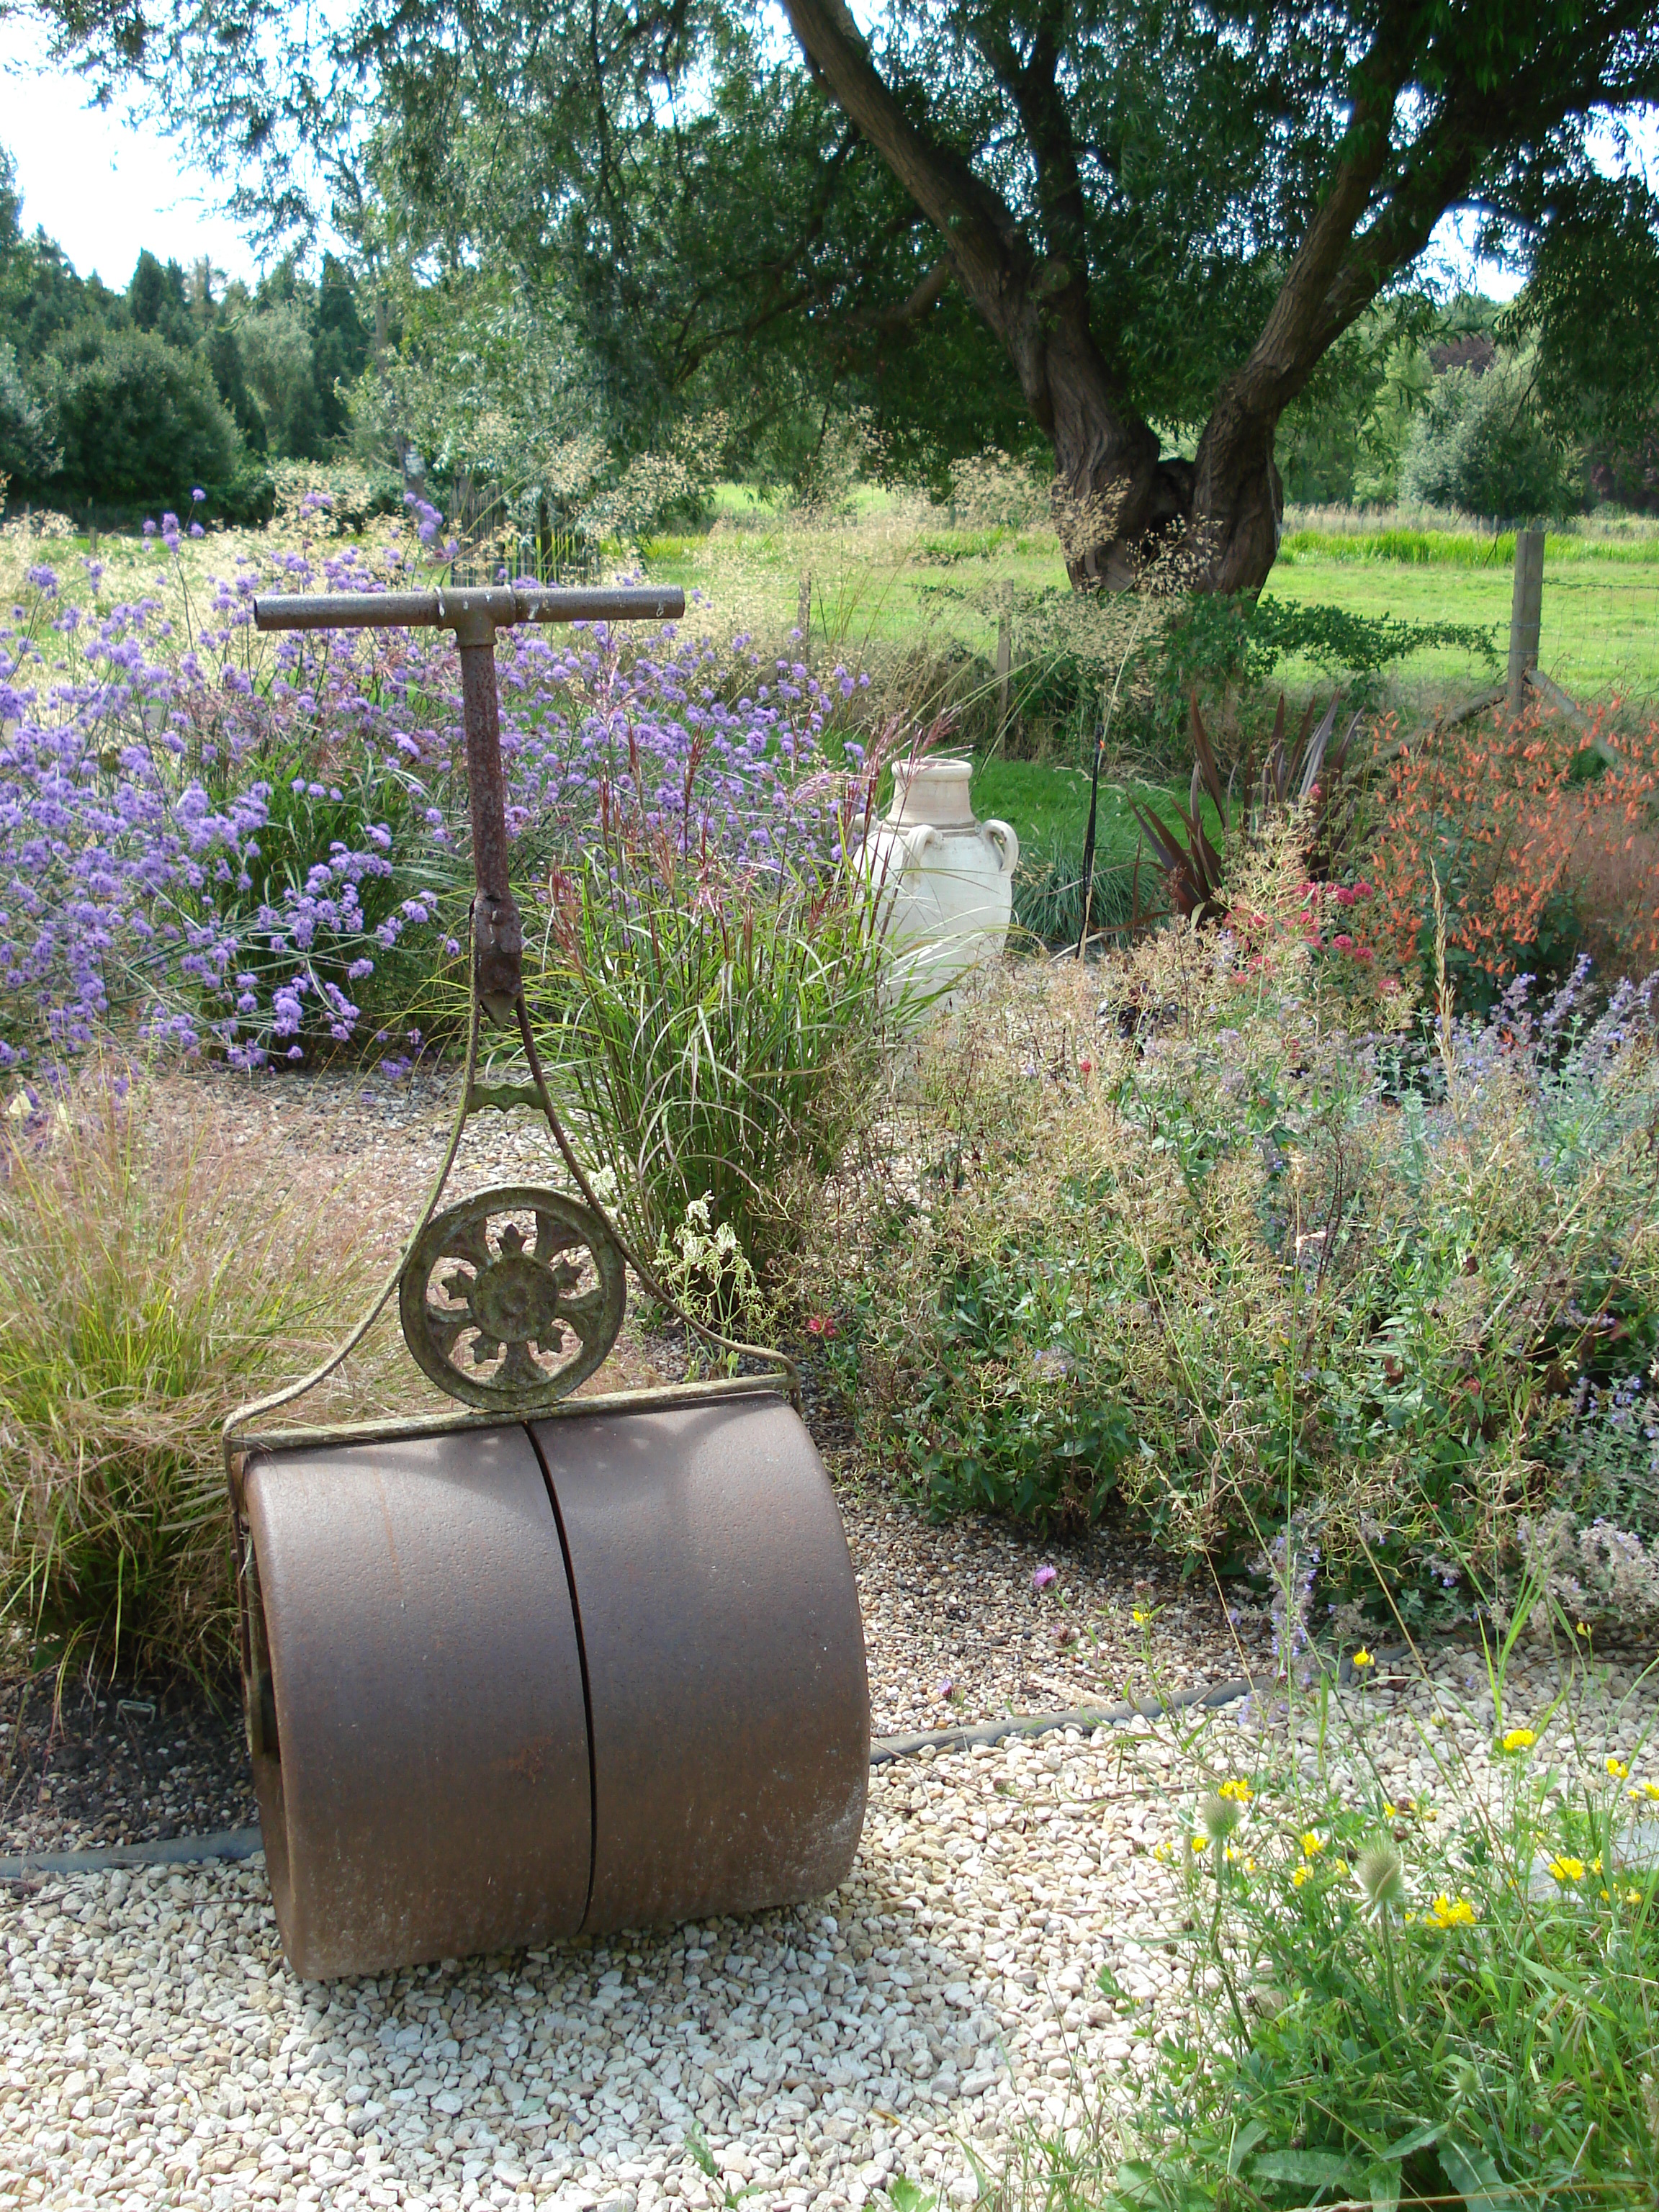 Antique details can give a garden a sense of history